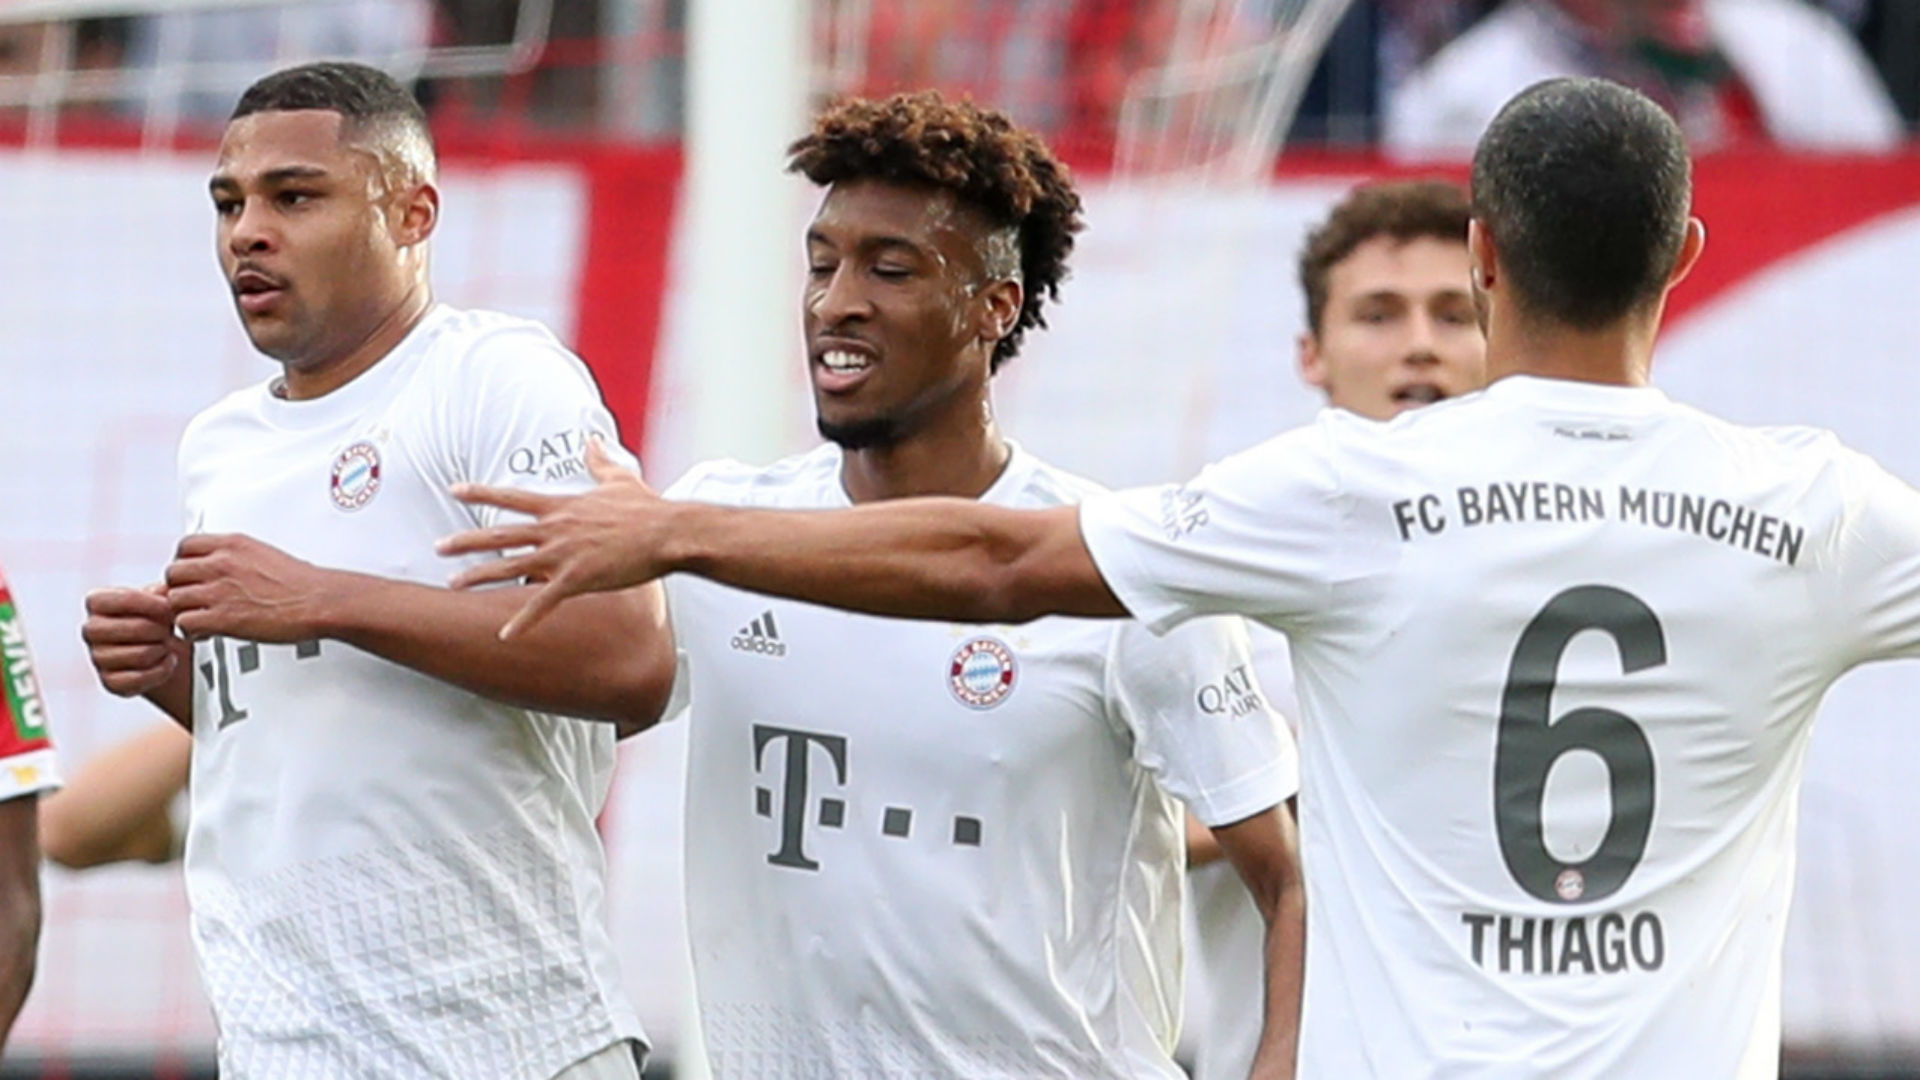 Cologne had no chance - Gnabry revels in Bayern's blistering start